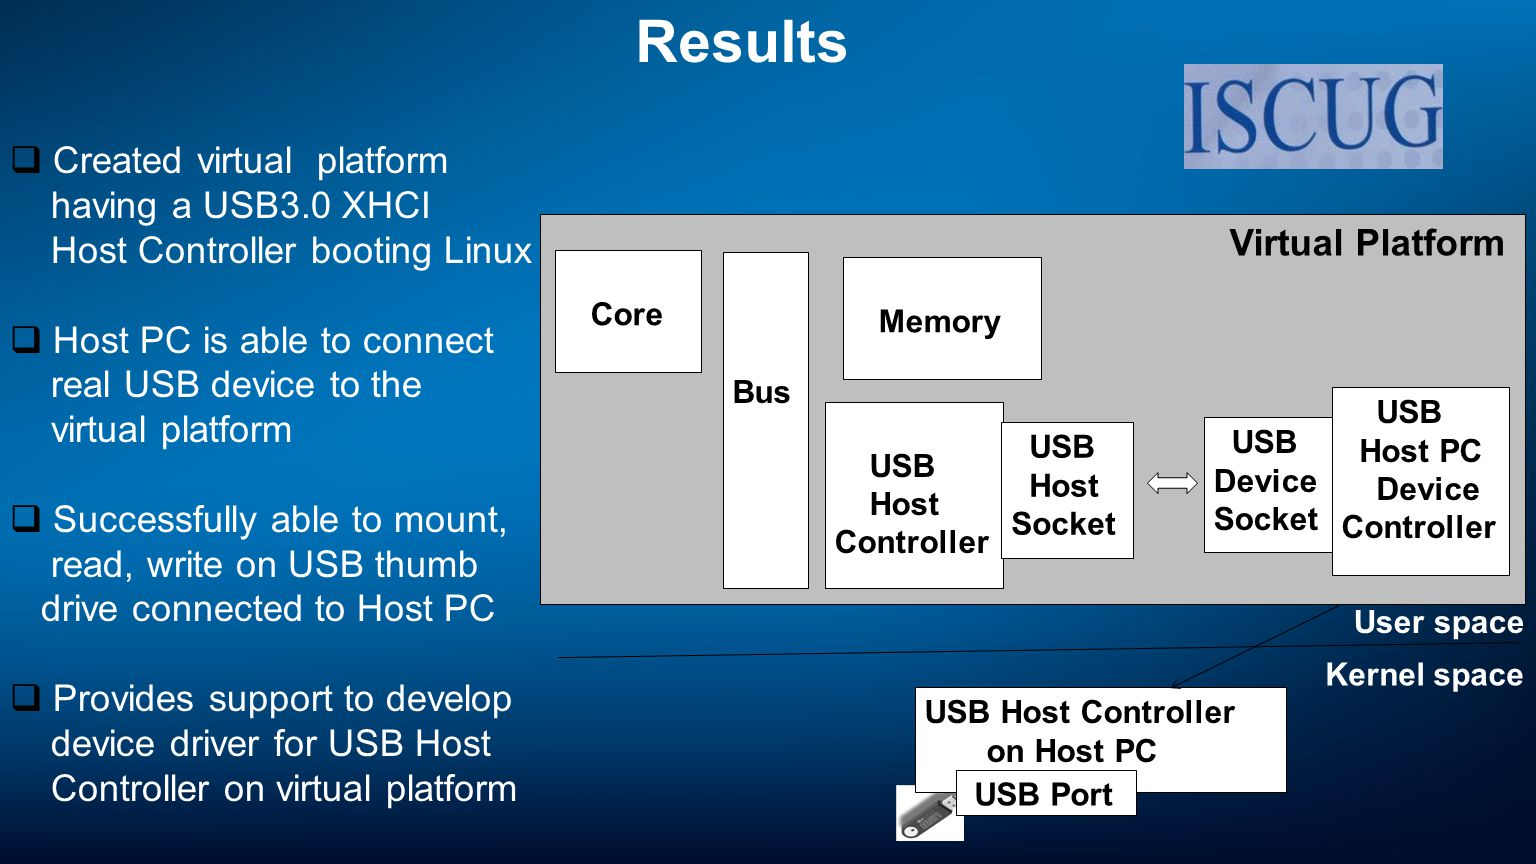 Virtual Platform Core Bus Memory USB Host Controller USB Host Socket USB Host PC Device Controller USB Device Socket USB Host Controller on Host PC User space Results USB Port Created virtual platform having a USB3.0 XHCI Host Controller booting Linux Host PC is able to connect real USB device to the virtual platform Successfully able to mount, read, write on USB thumb drive connected to Host PC Provides support to develop device driver for USB Host Controller on virtual platform Kernel space